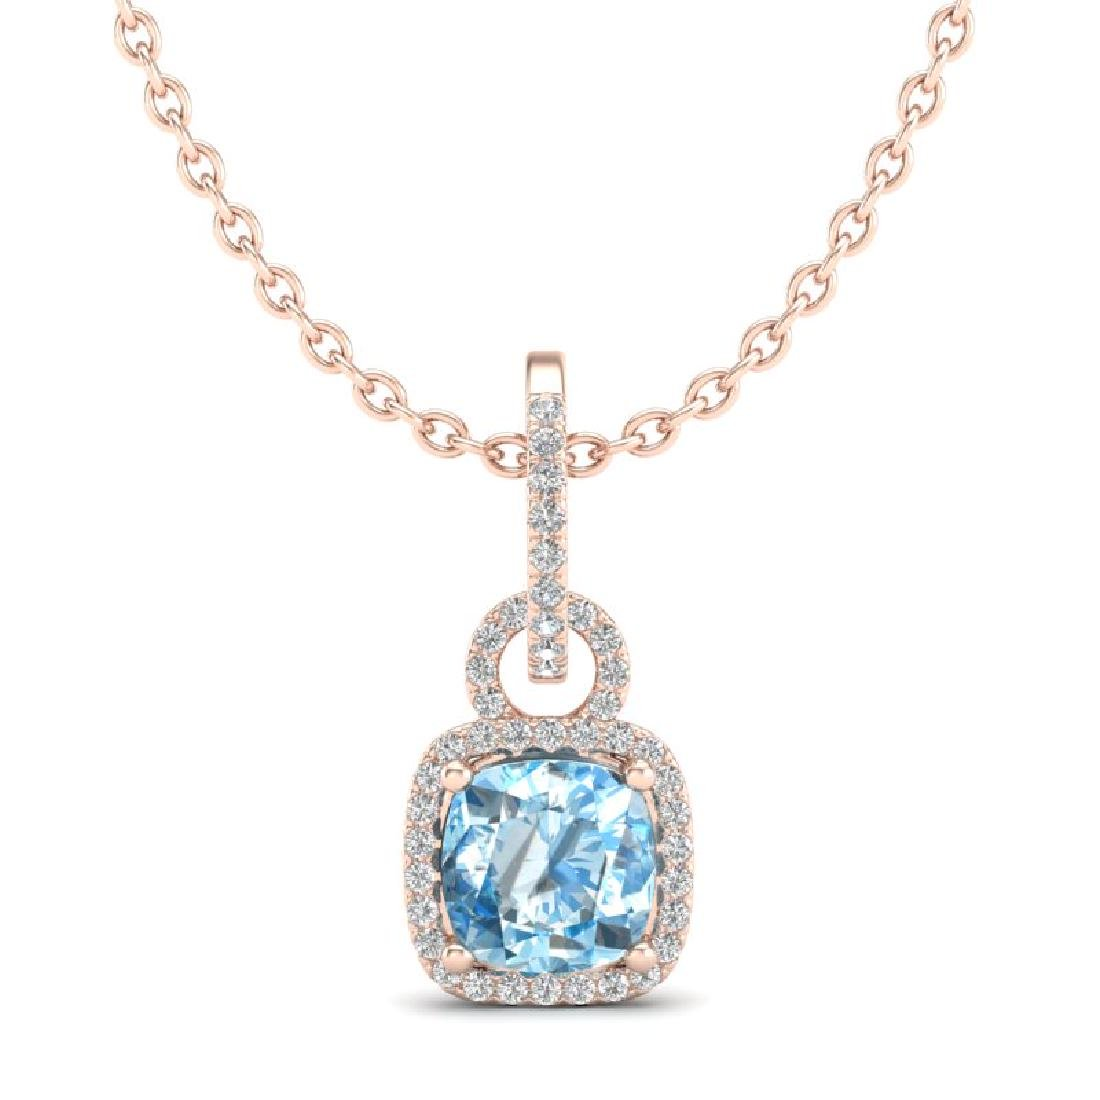 3.50 CTW Topaz & Micro VS/SI Diamond Necklace 14K Rose - 2